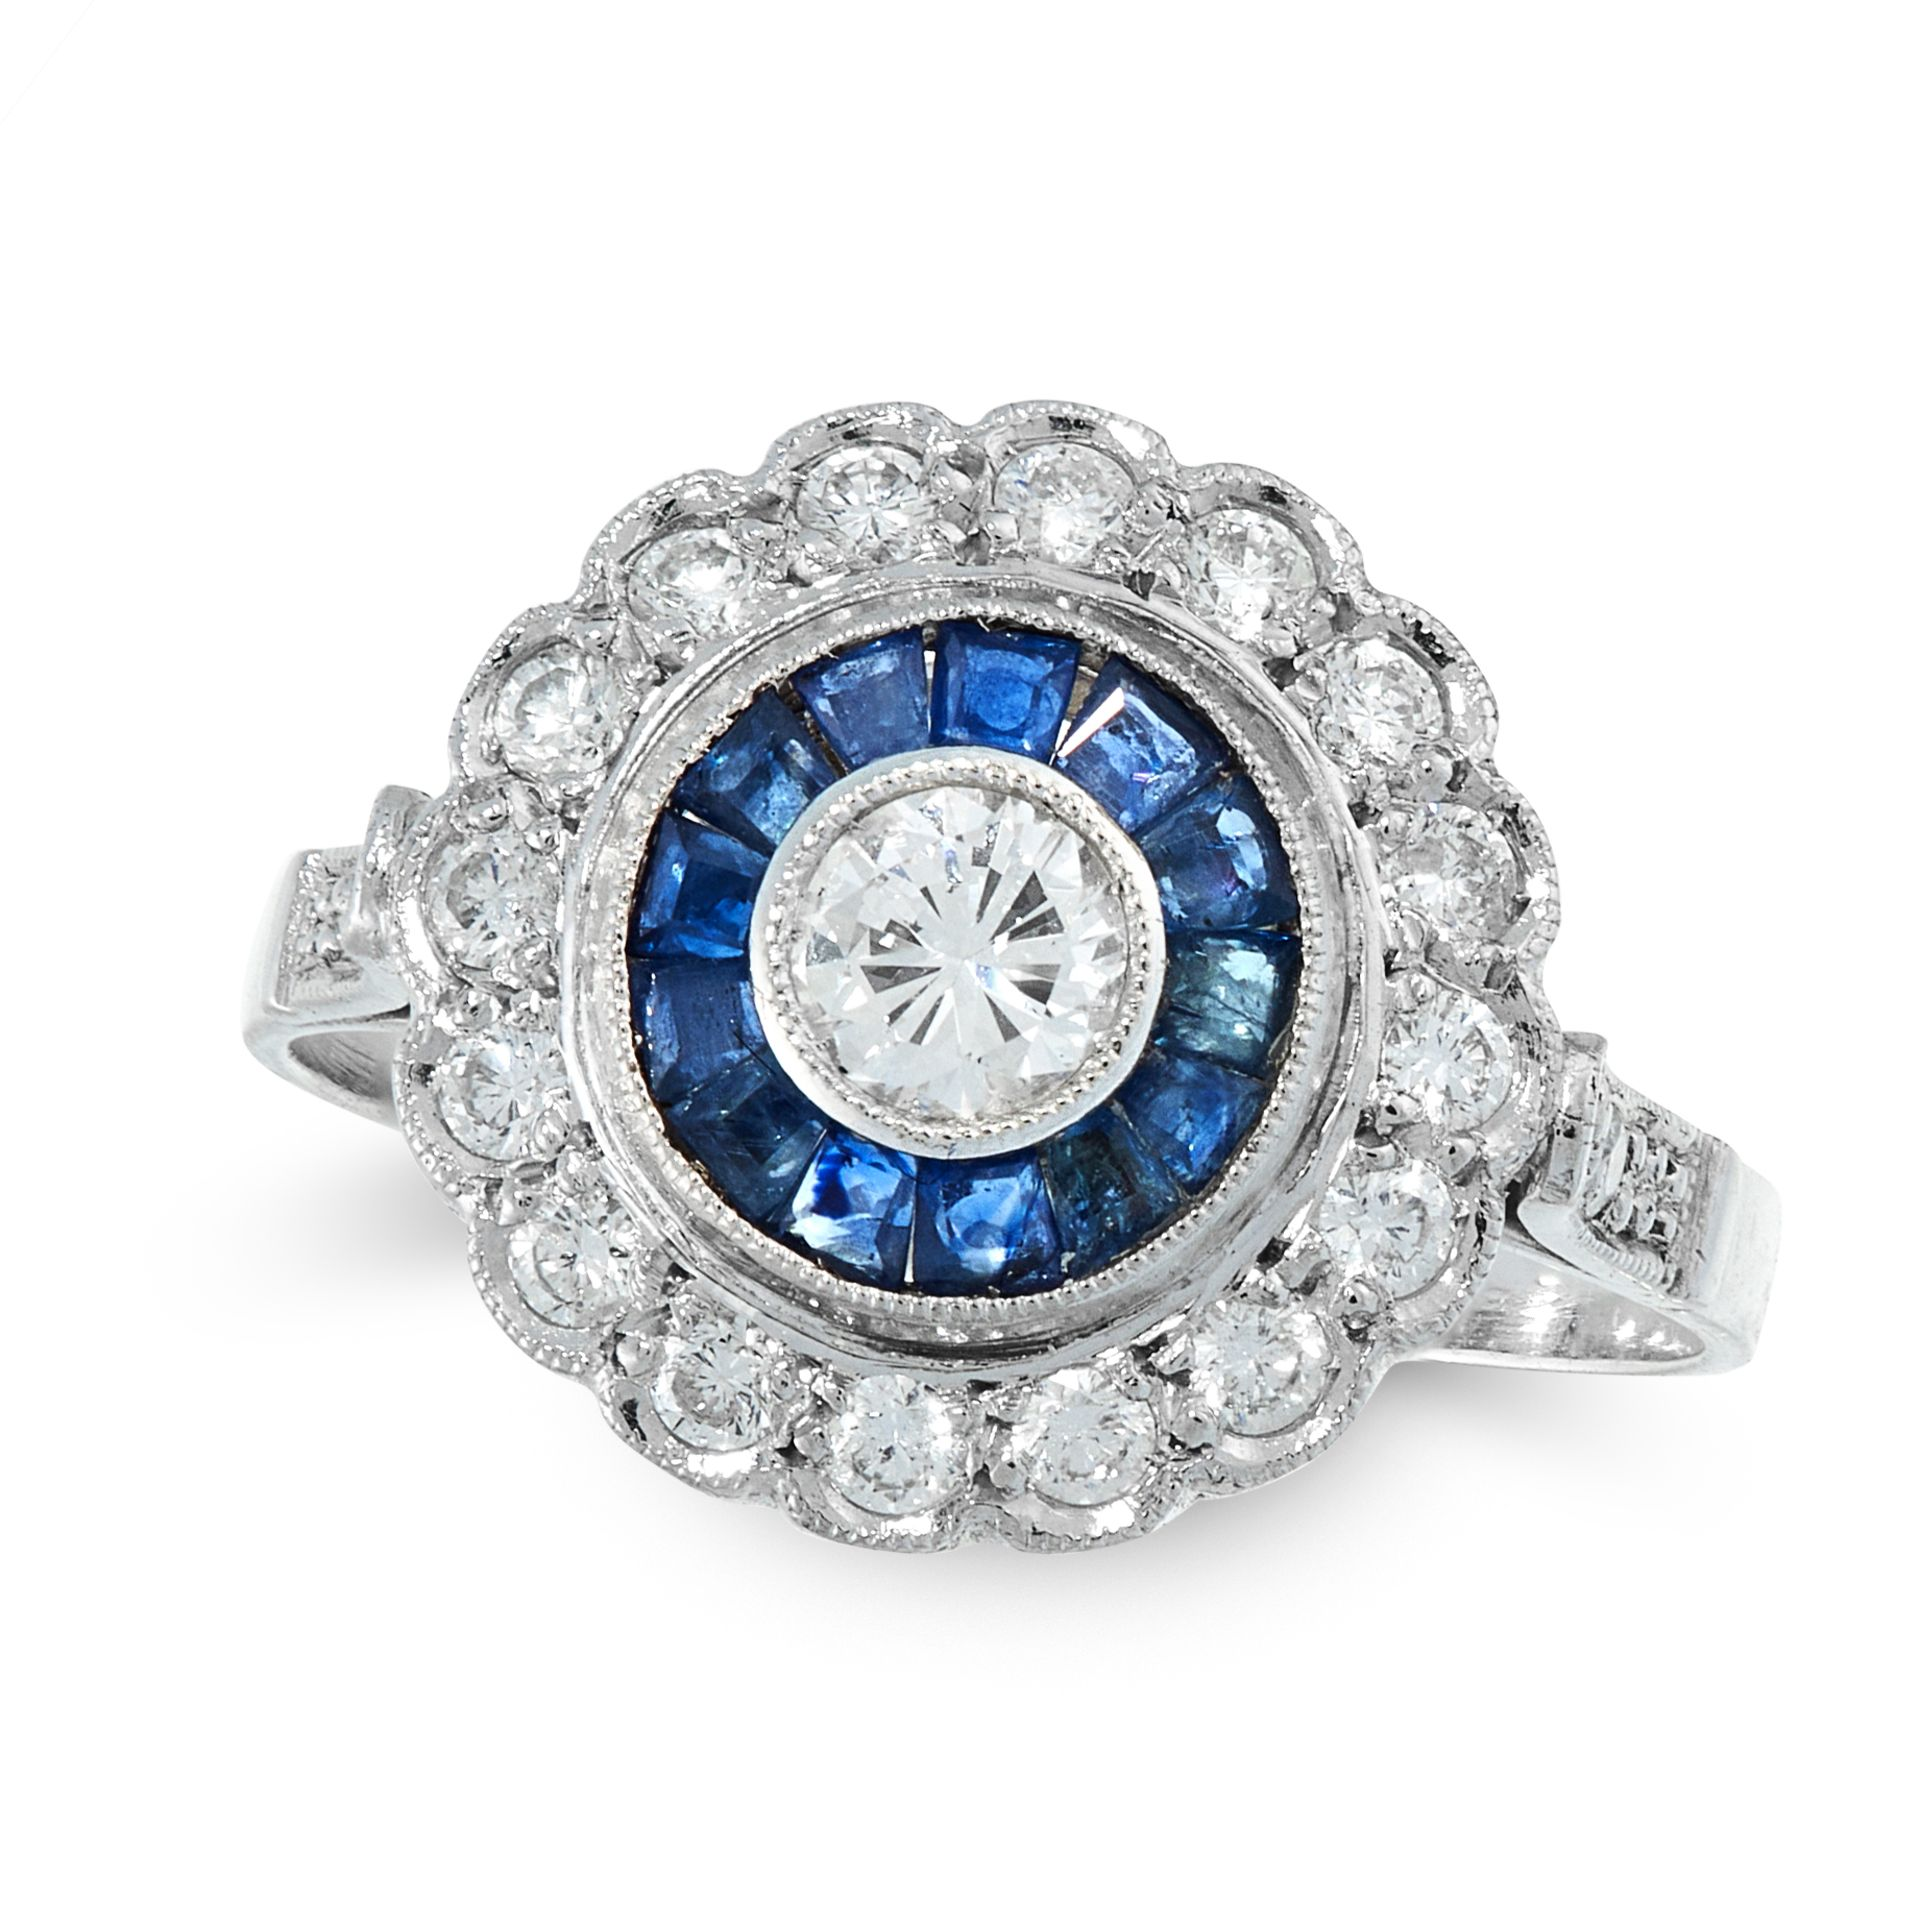 A DIAMOND AND SAPPHIRE DRESS RING of target design, the central round cut diamond within